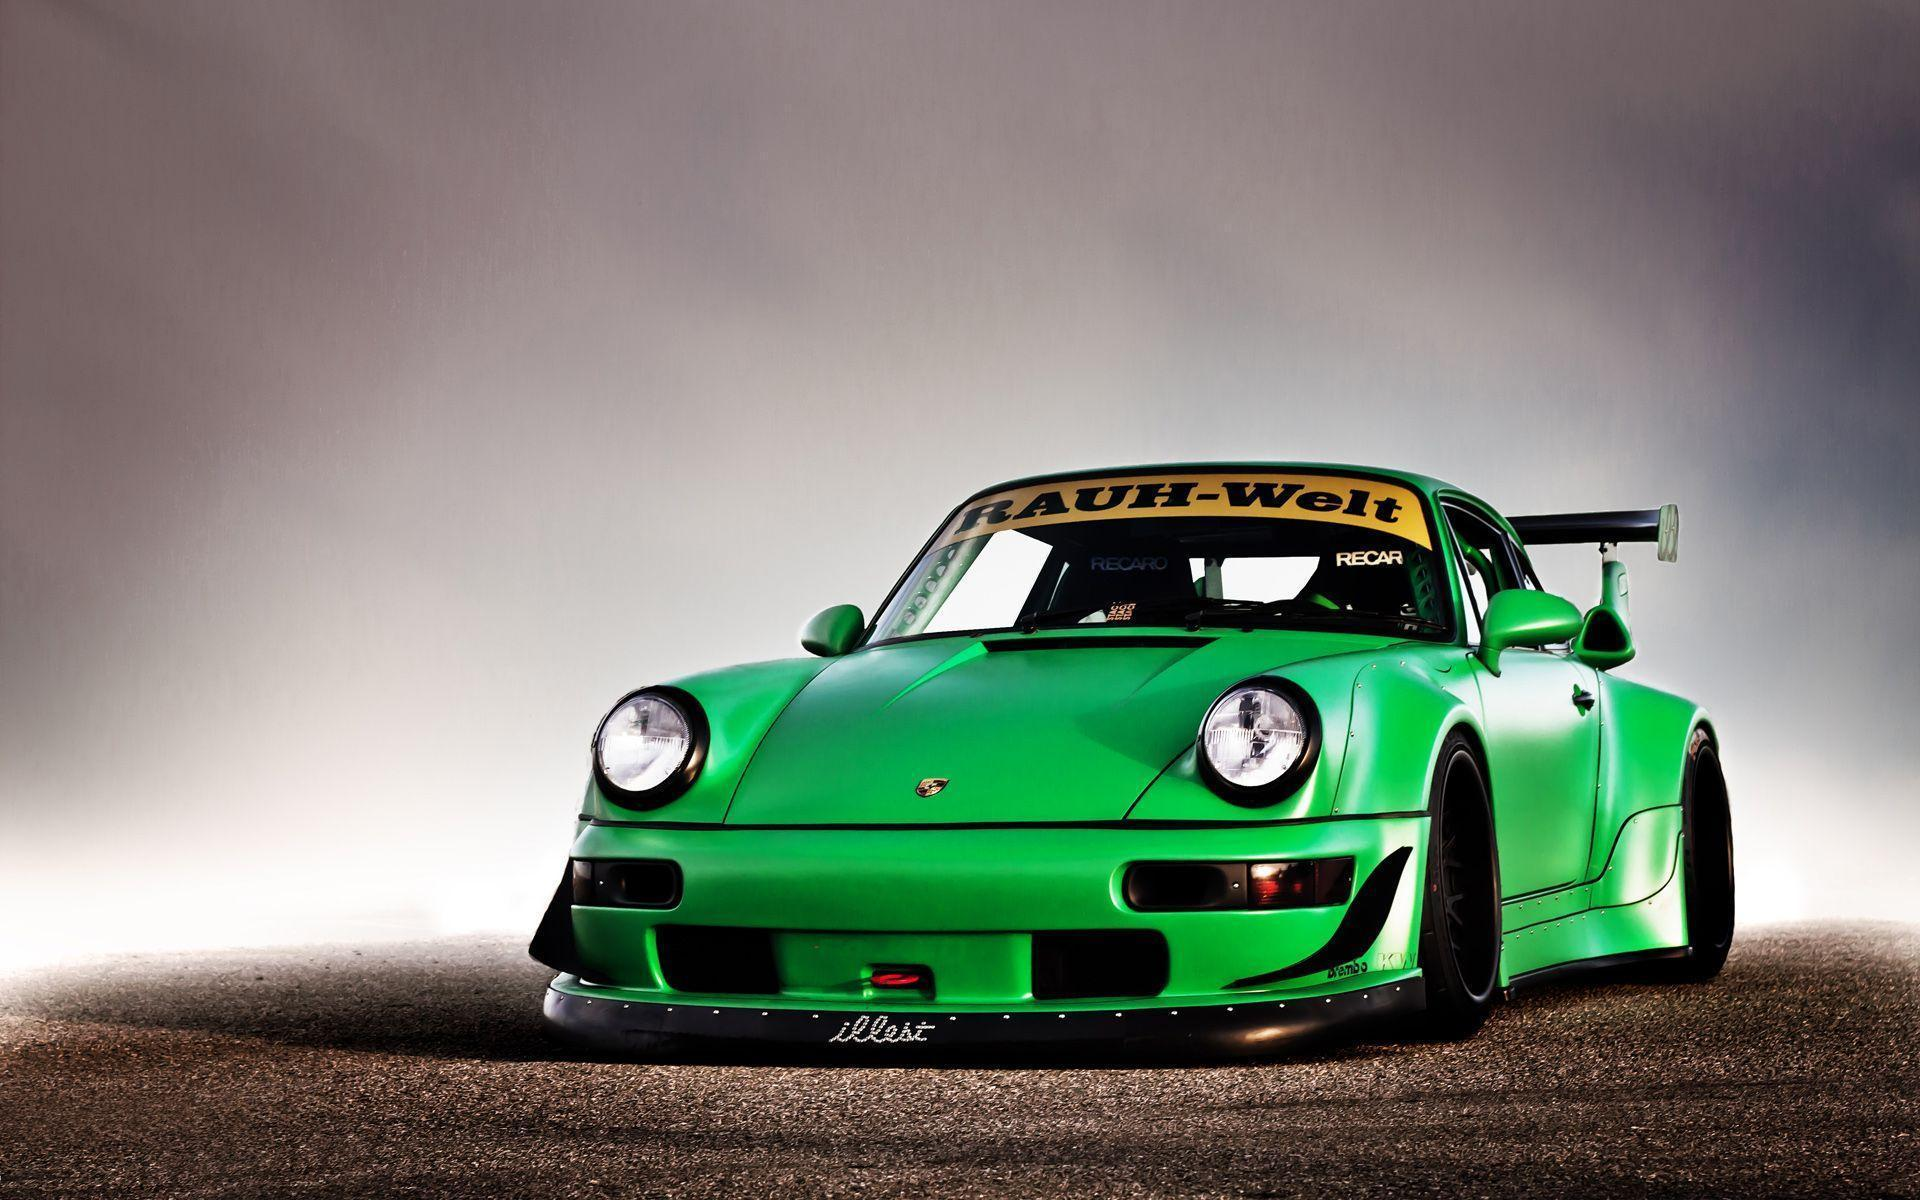 RWB Porsche Wallpapers   Top RWB Porsche Backgrounds 1920x1200